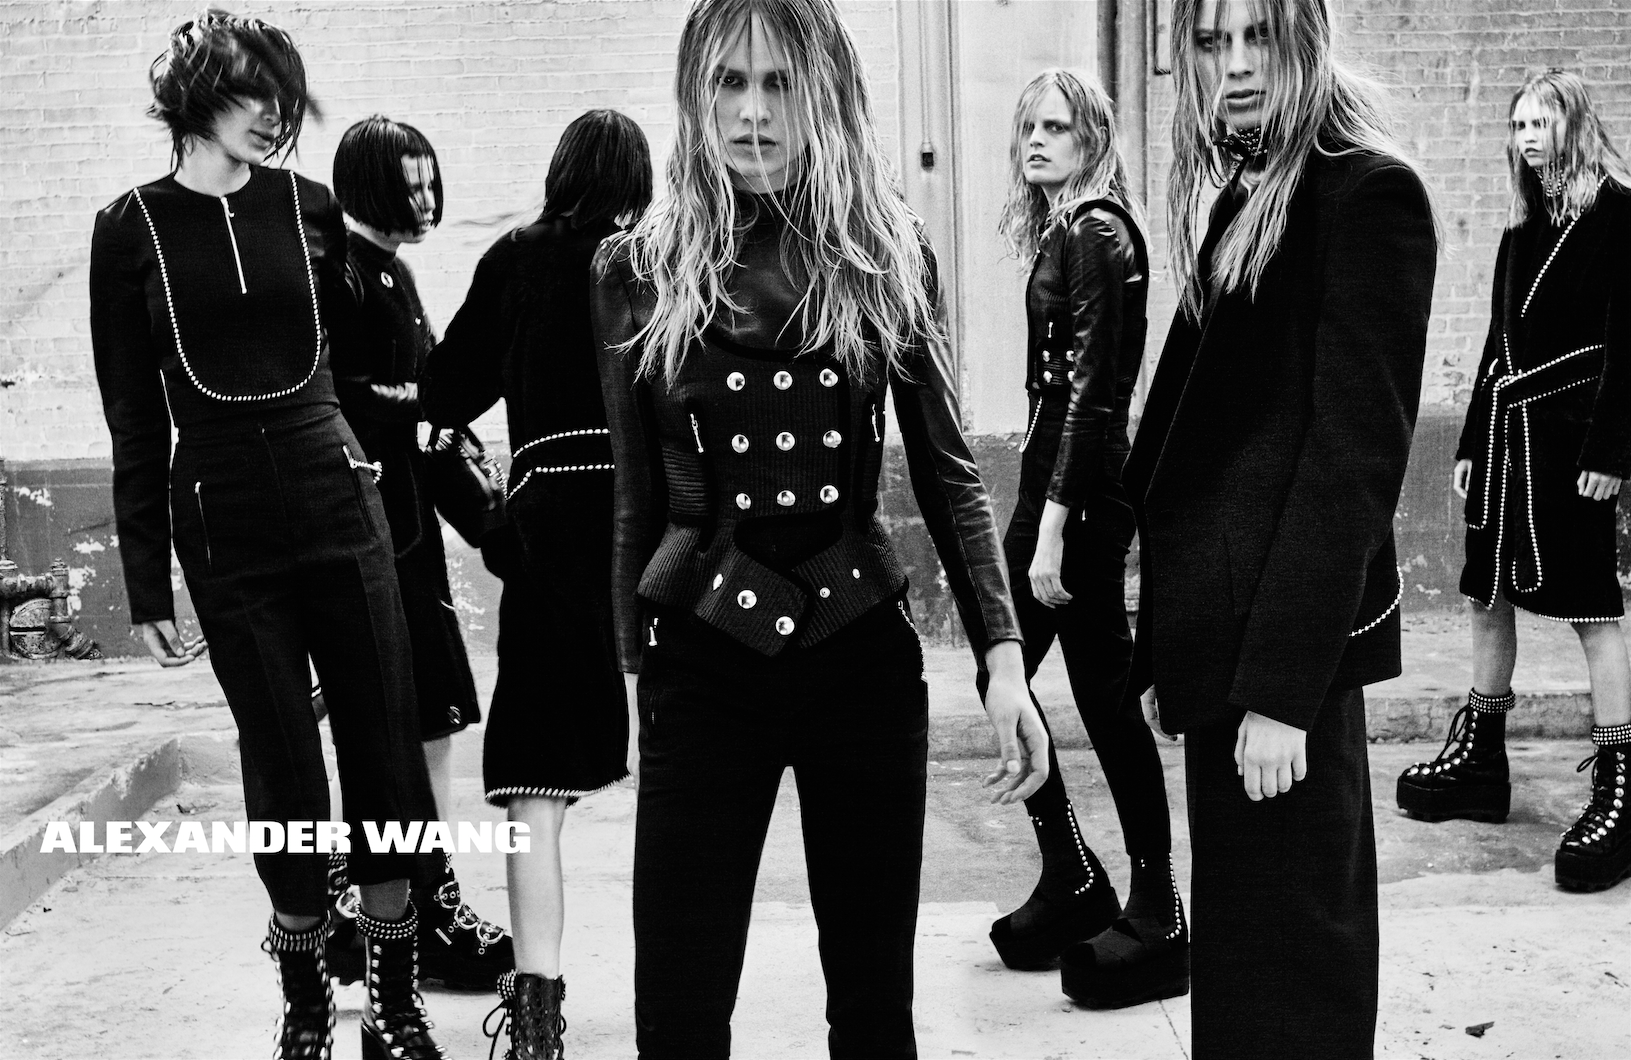 ALEXANDER WANG FW15 CAMPAIGN BY STEVEN KLEIN